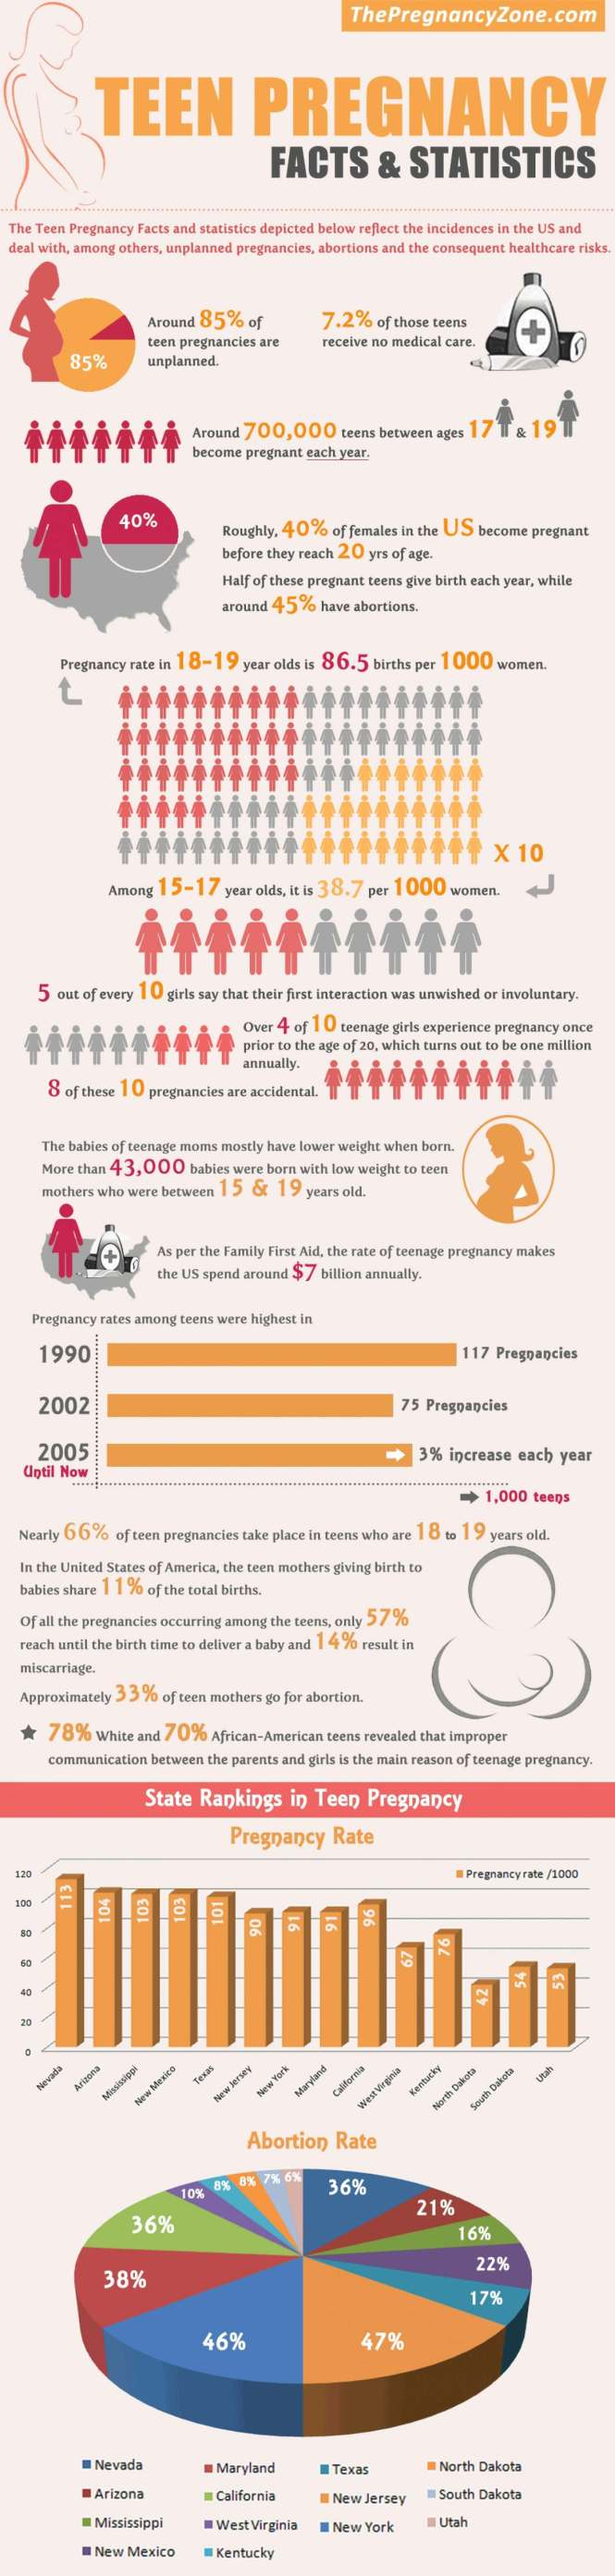 Teen Pregnancy Facts and Statistics